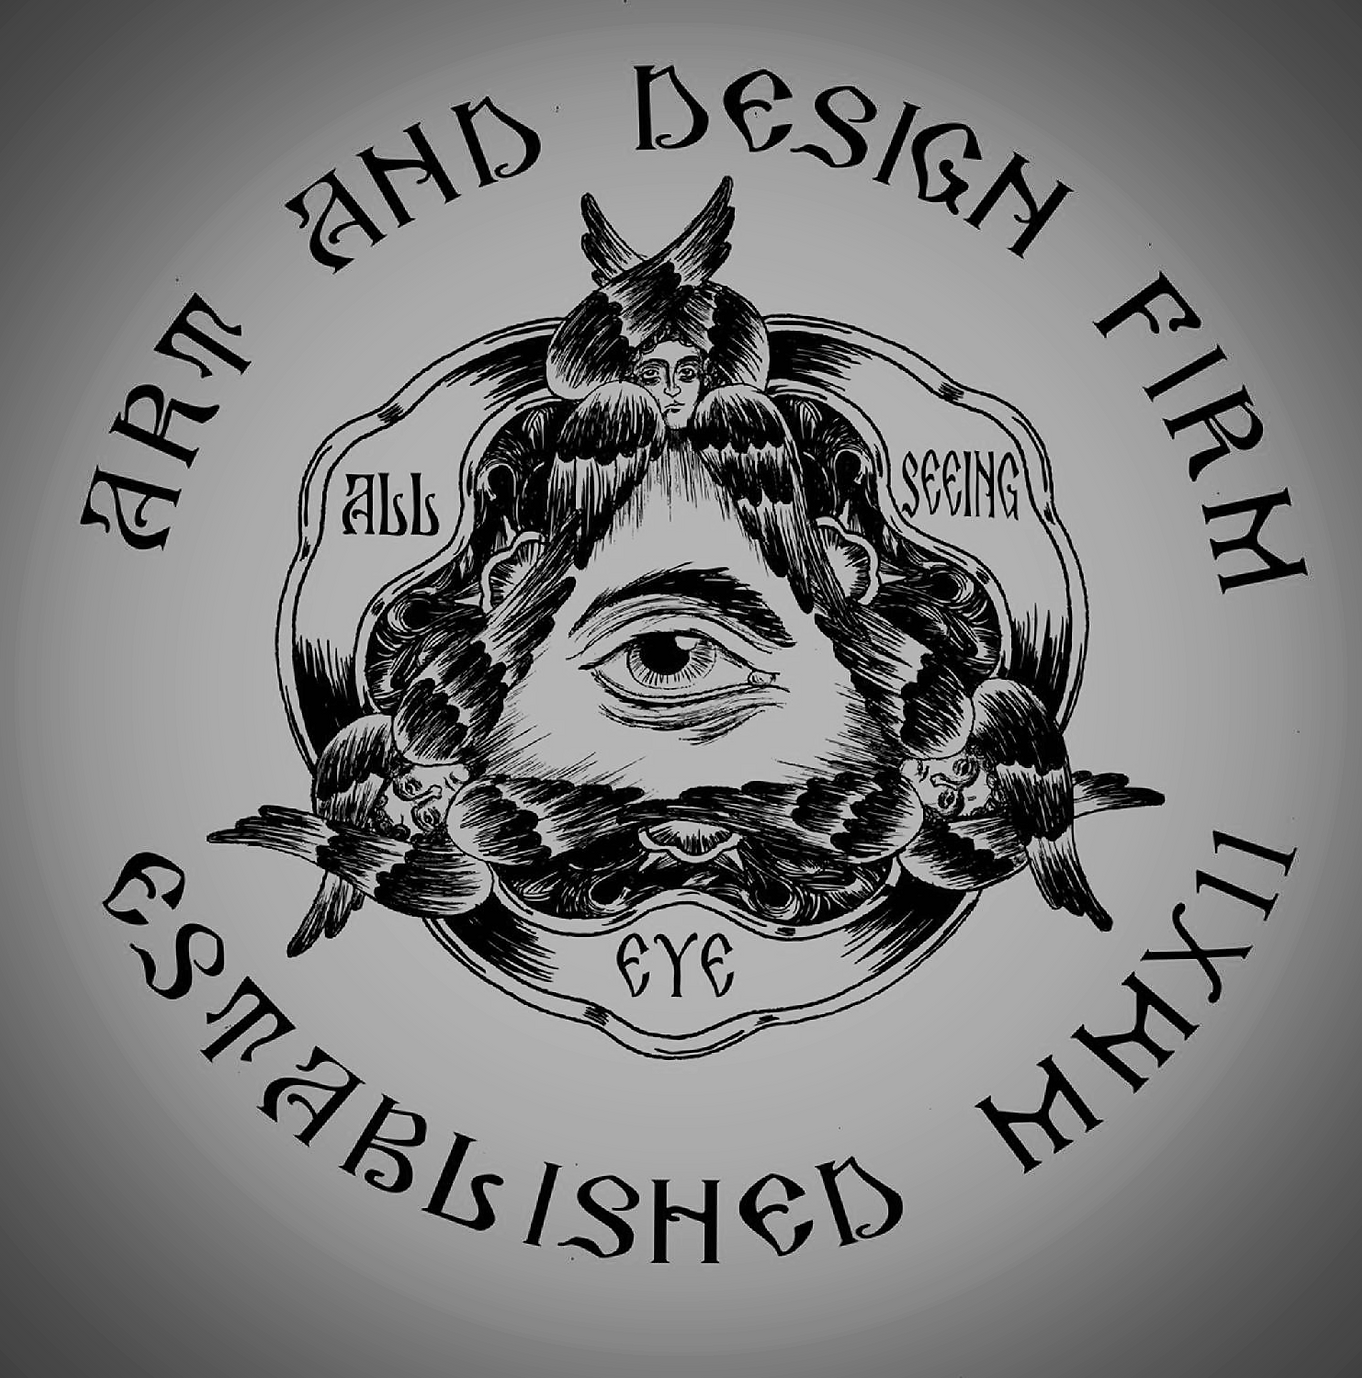 All Seeing Eye Art And Design Firm